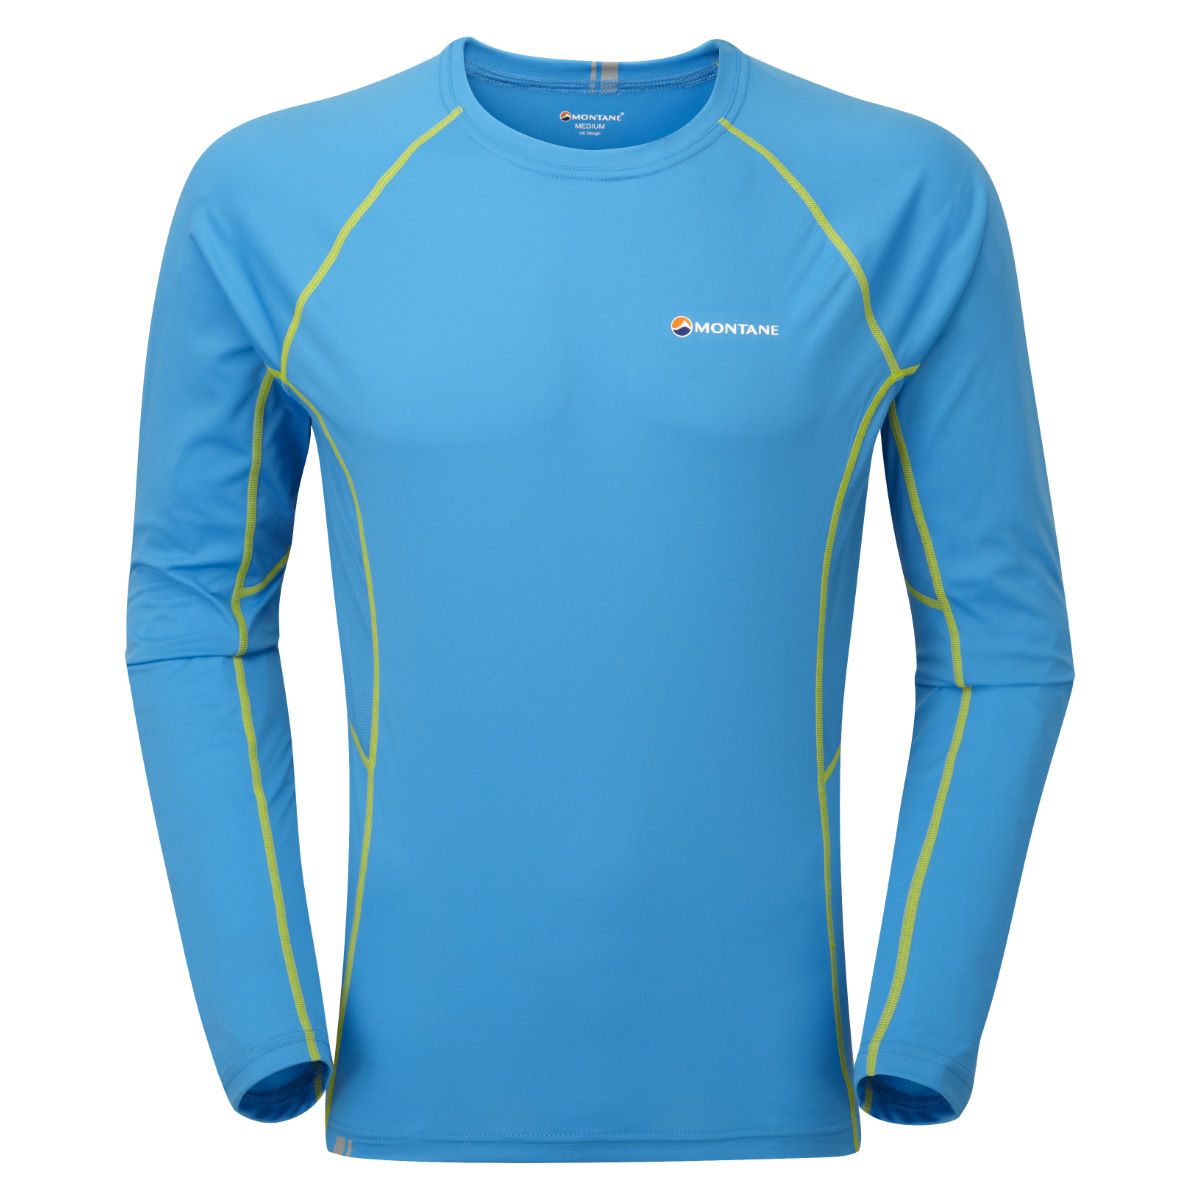 Montane - Sonic Long Sleeve T-Shirt - S Blue Spark/Kiwi